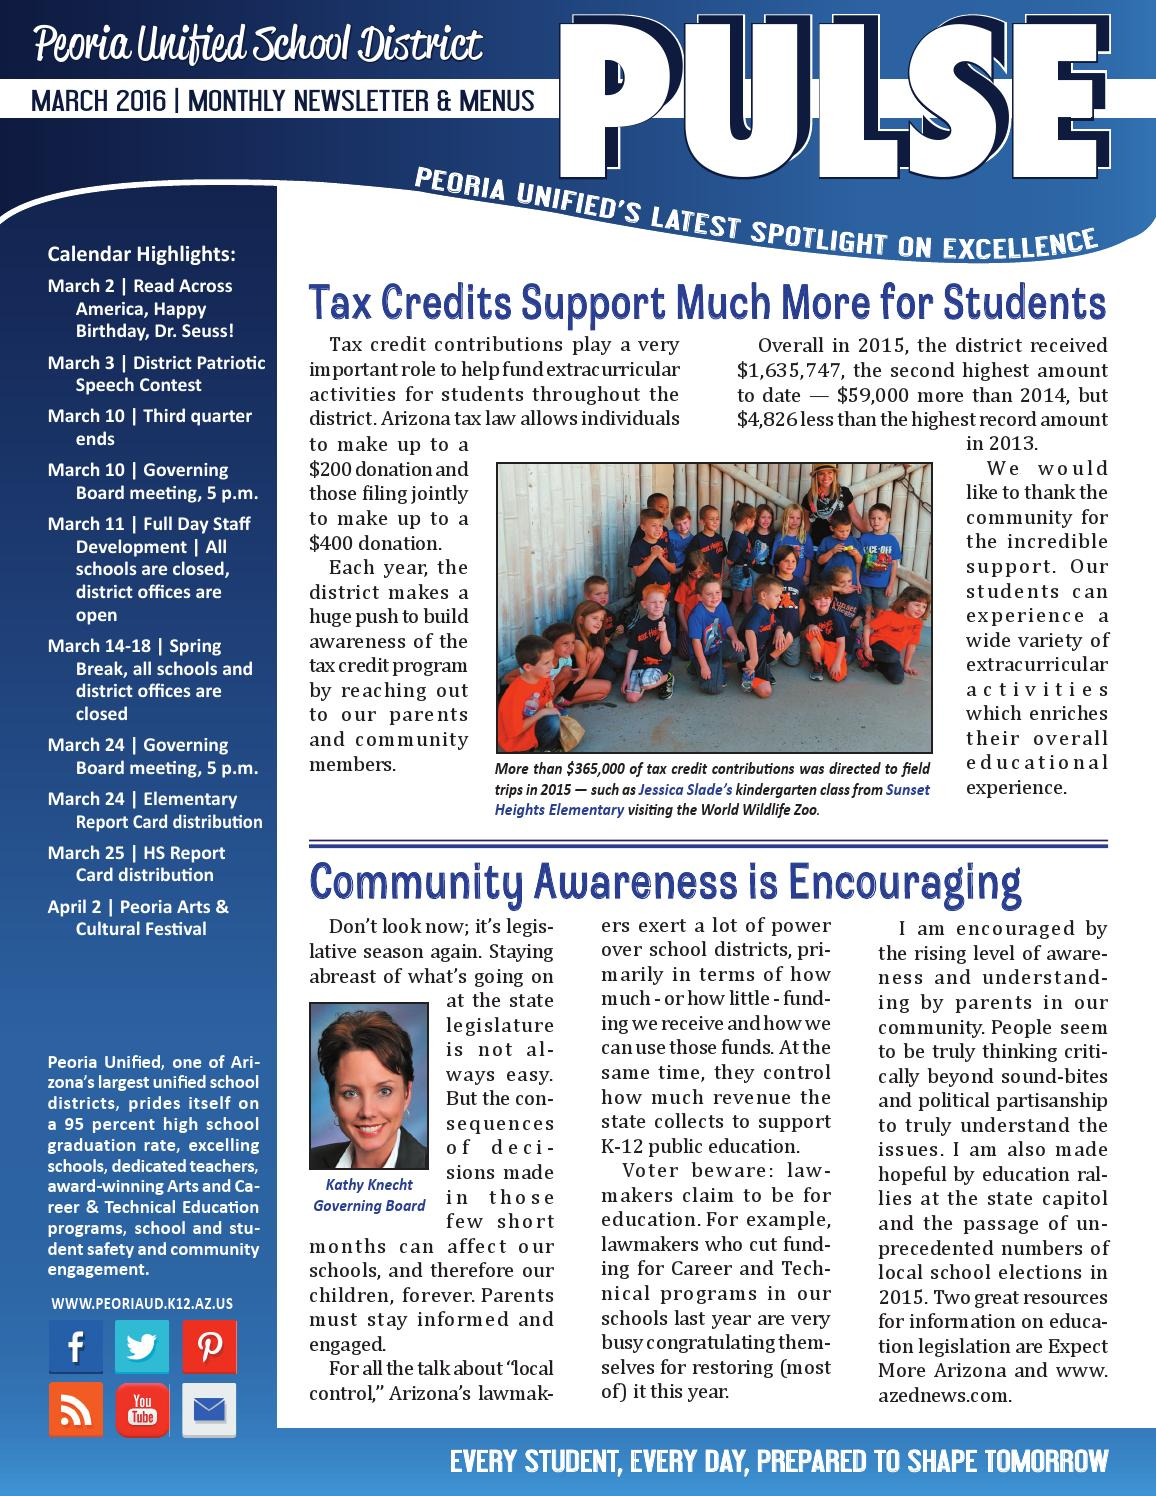 Peoria Unified School District March 2016 PULSE Newsletter